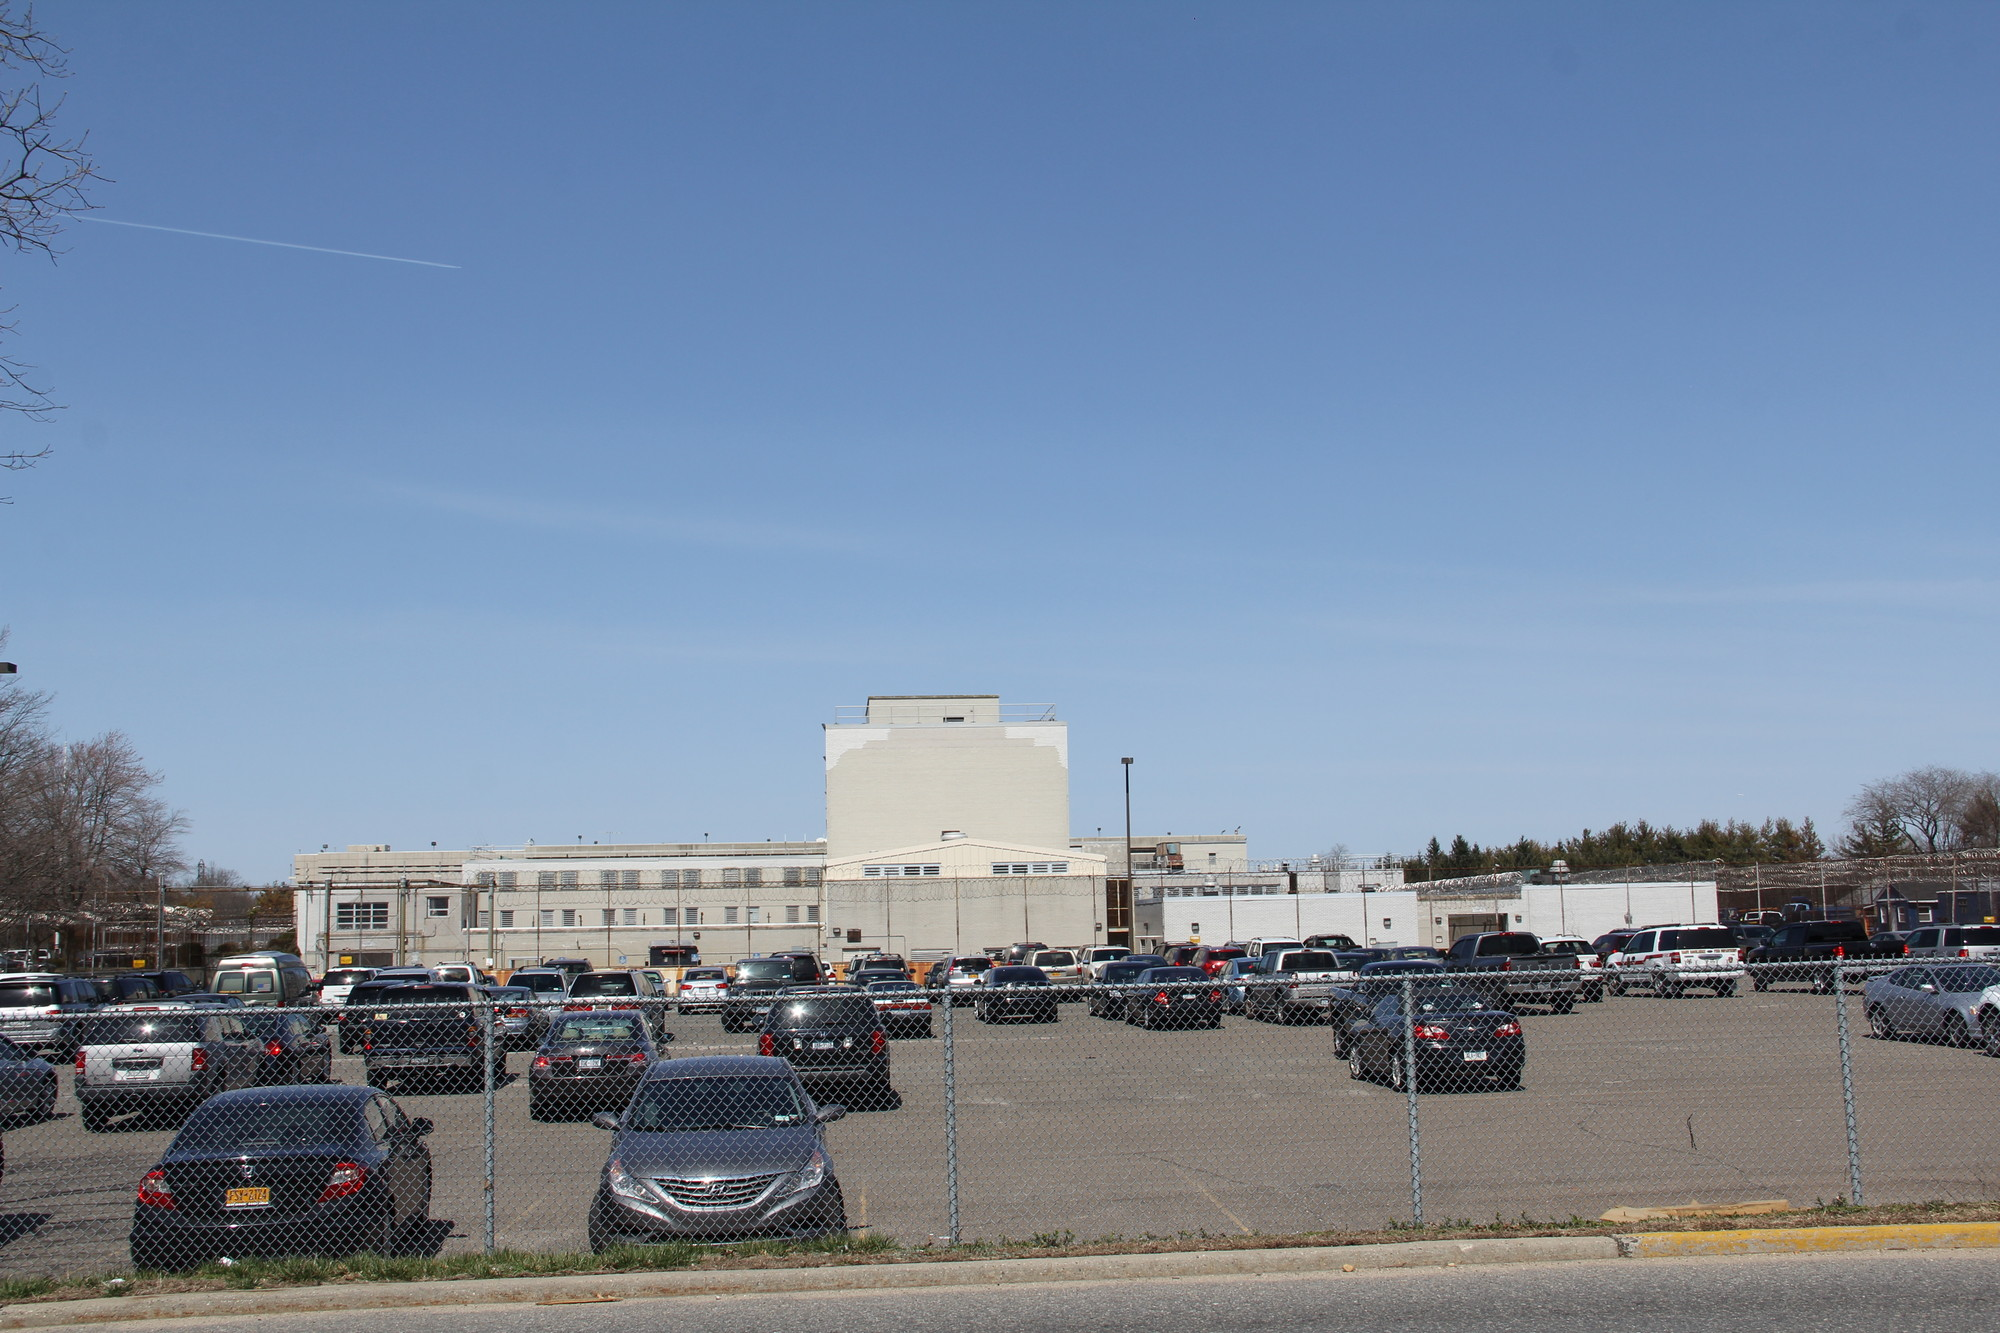 The Nassau County Correctional Center in East Meadow has faced criticism from state governing bodies and advocacy groups in recent years.